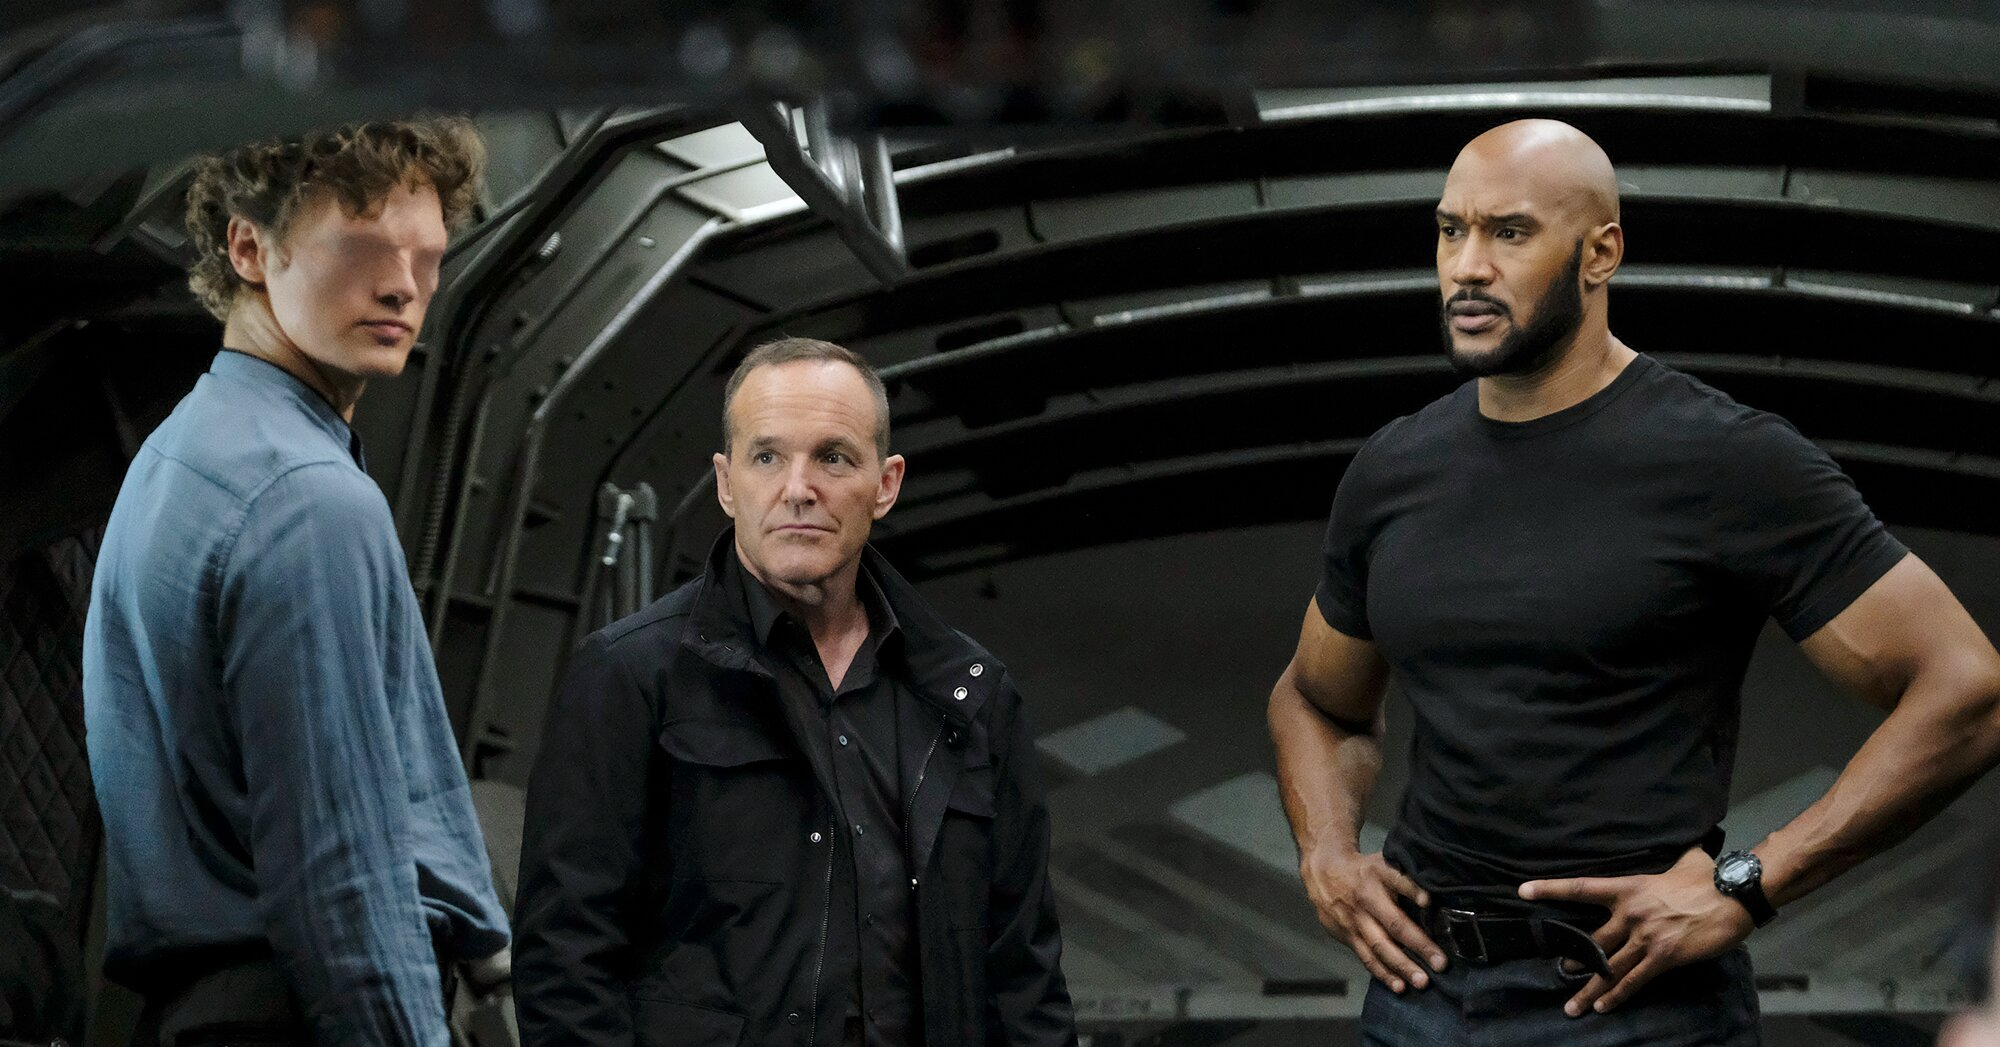 'Agents of S.H.I.E.L.D.' recap: Blasts from the past